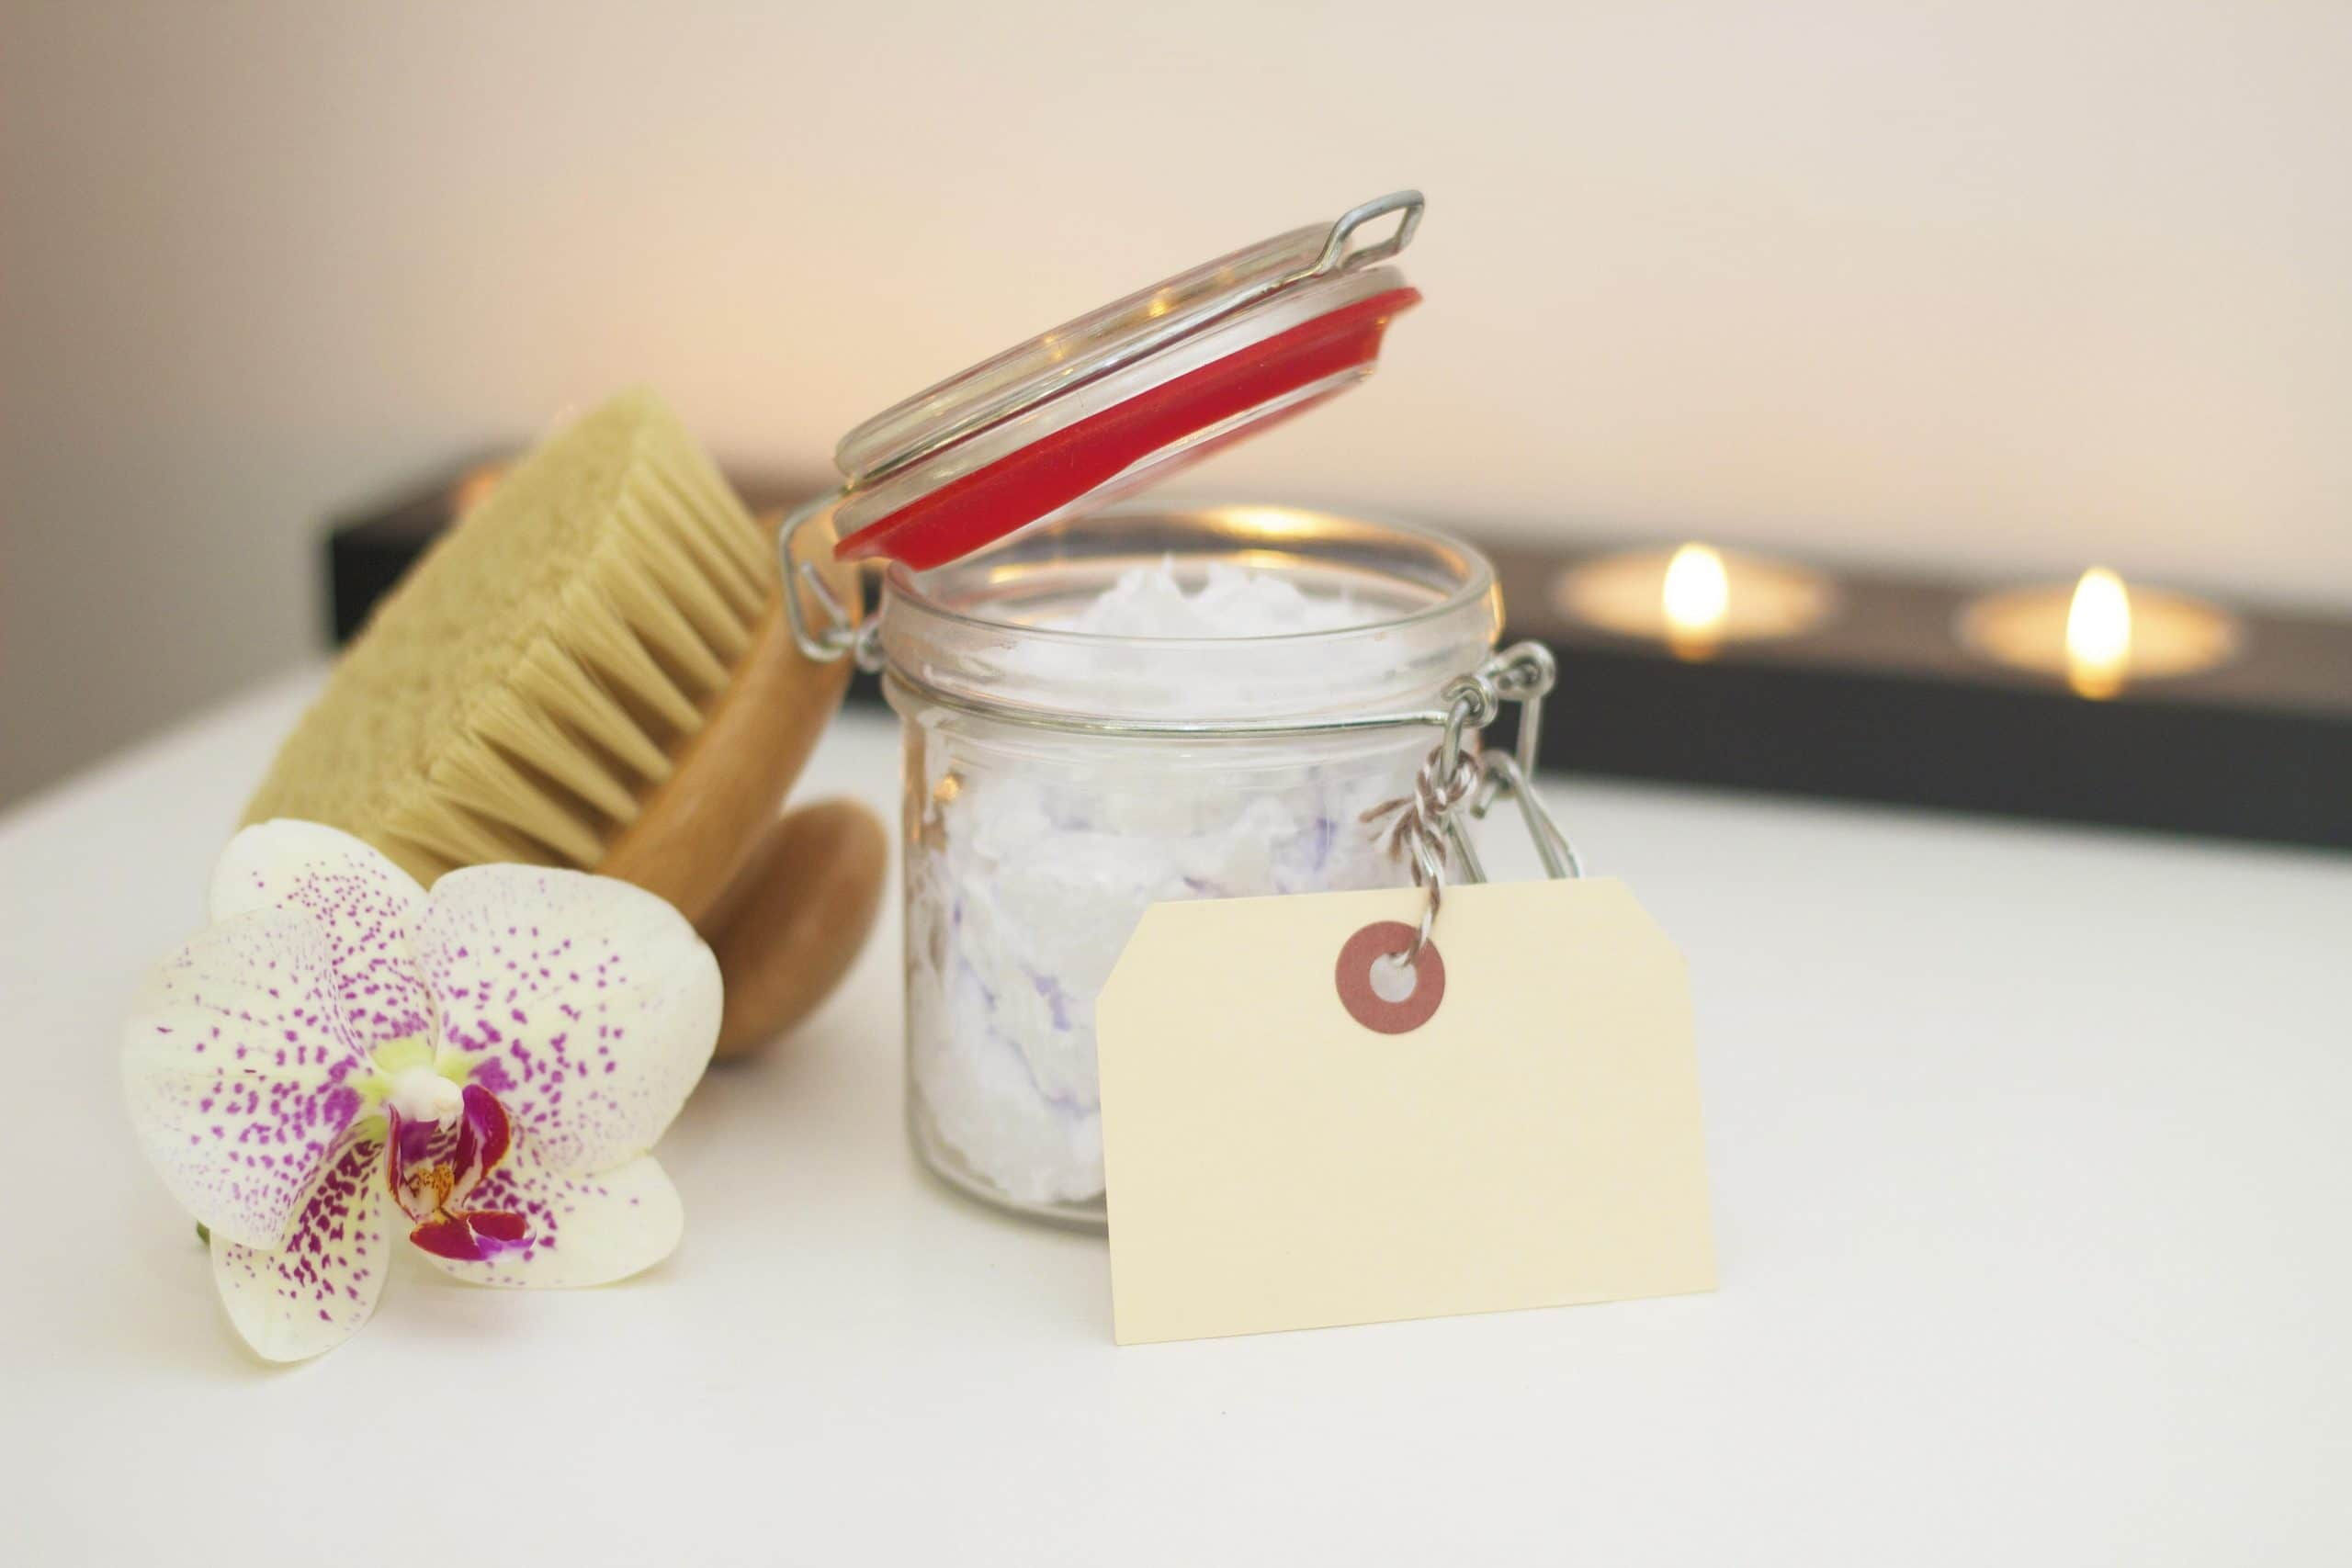 Spa Treatments for Stress Reduction